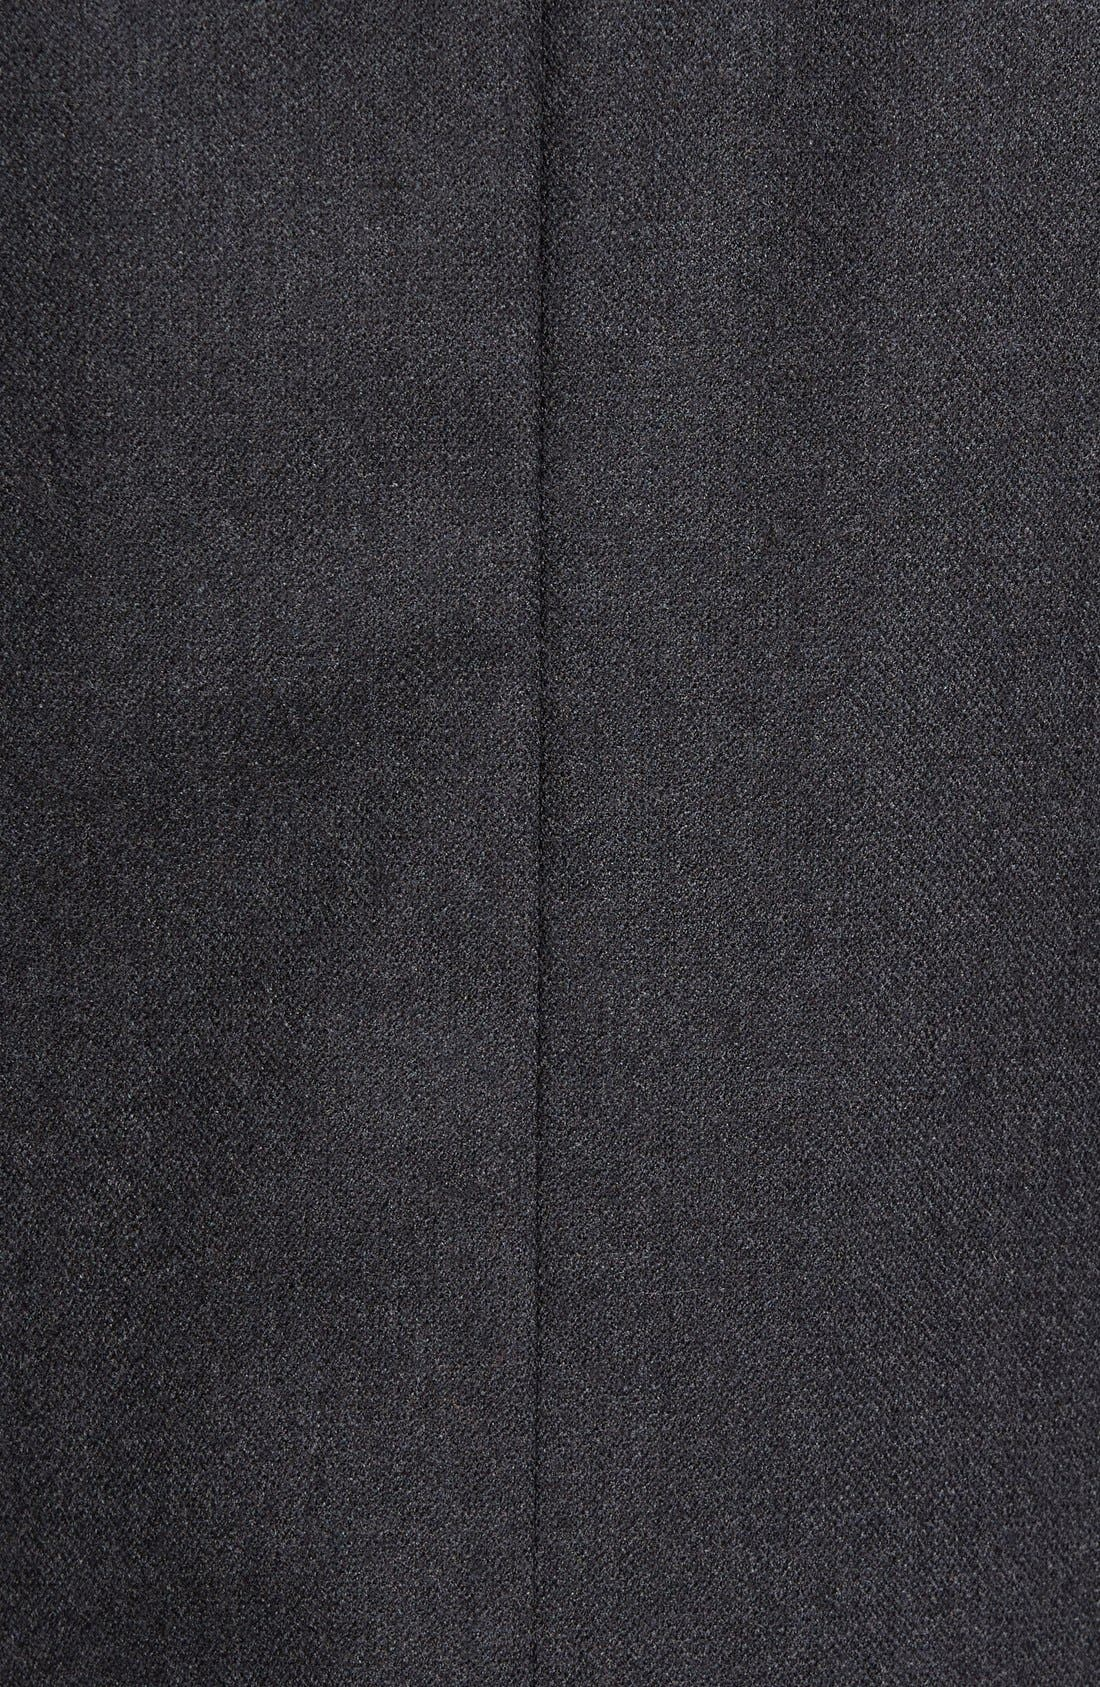 Classic Fit Wool & Cashmere Blazer,                             Alternate thumbnail 5, color,                             Charcoal